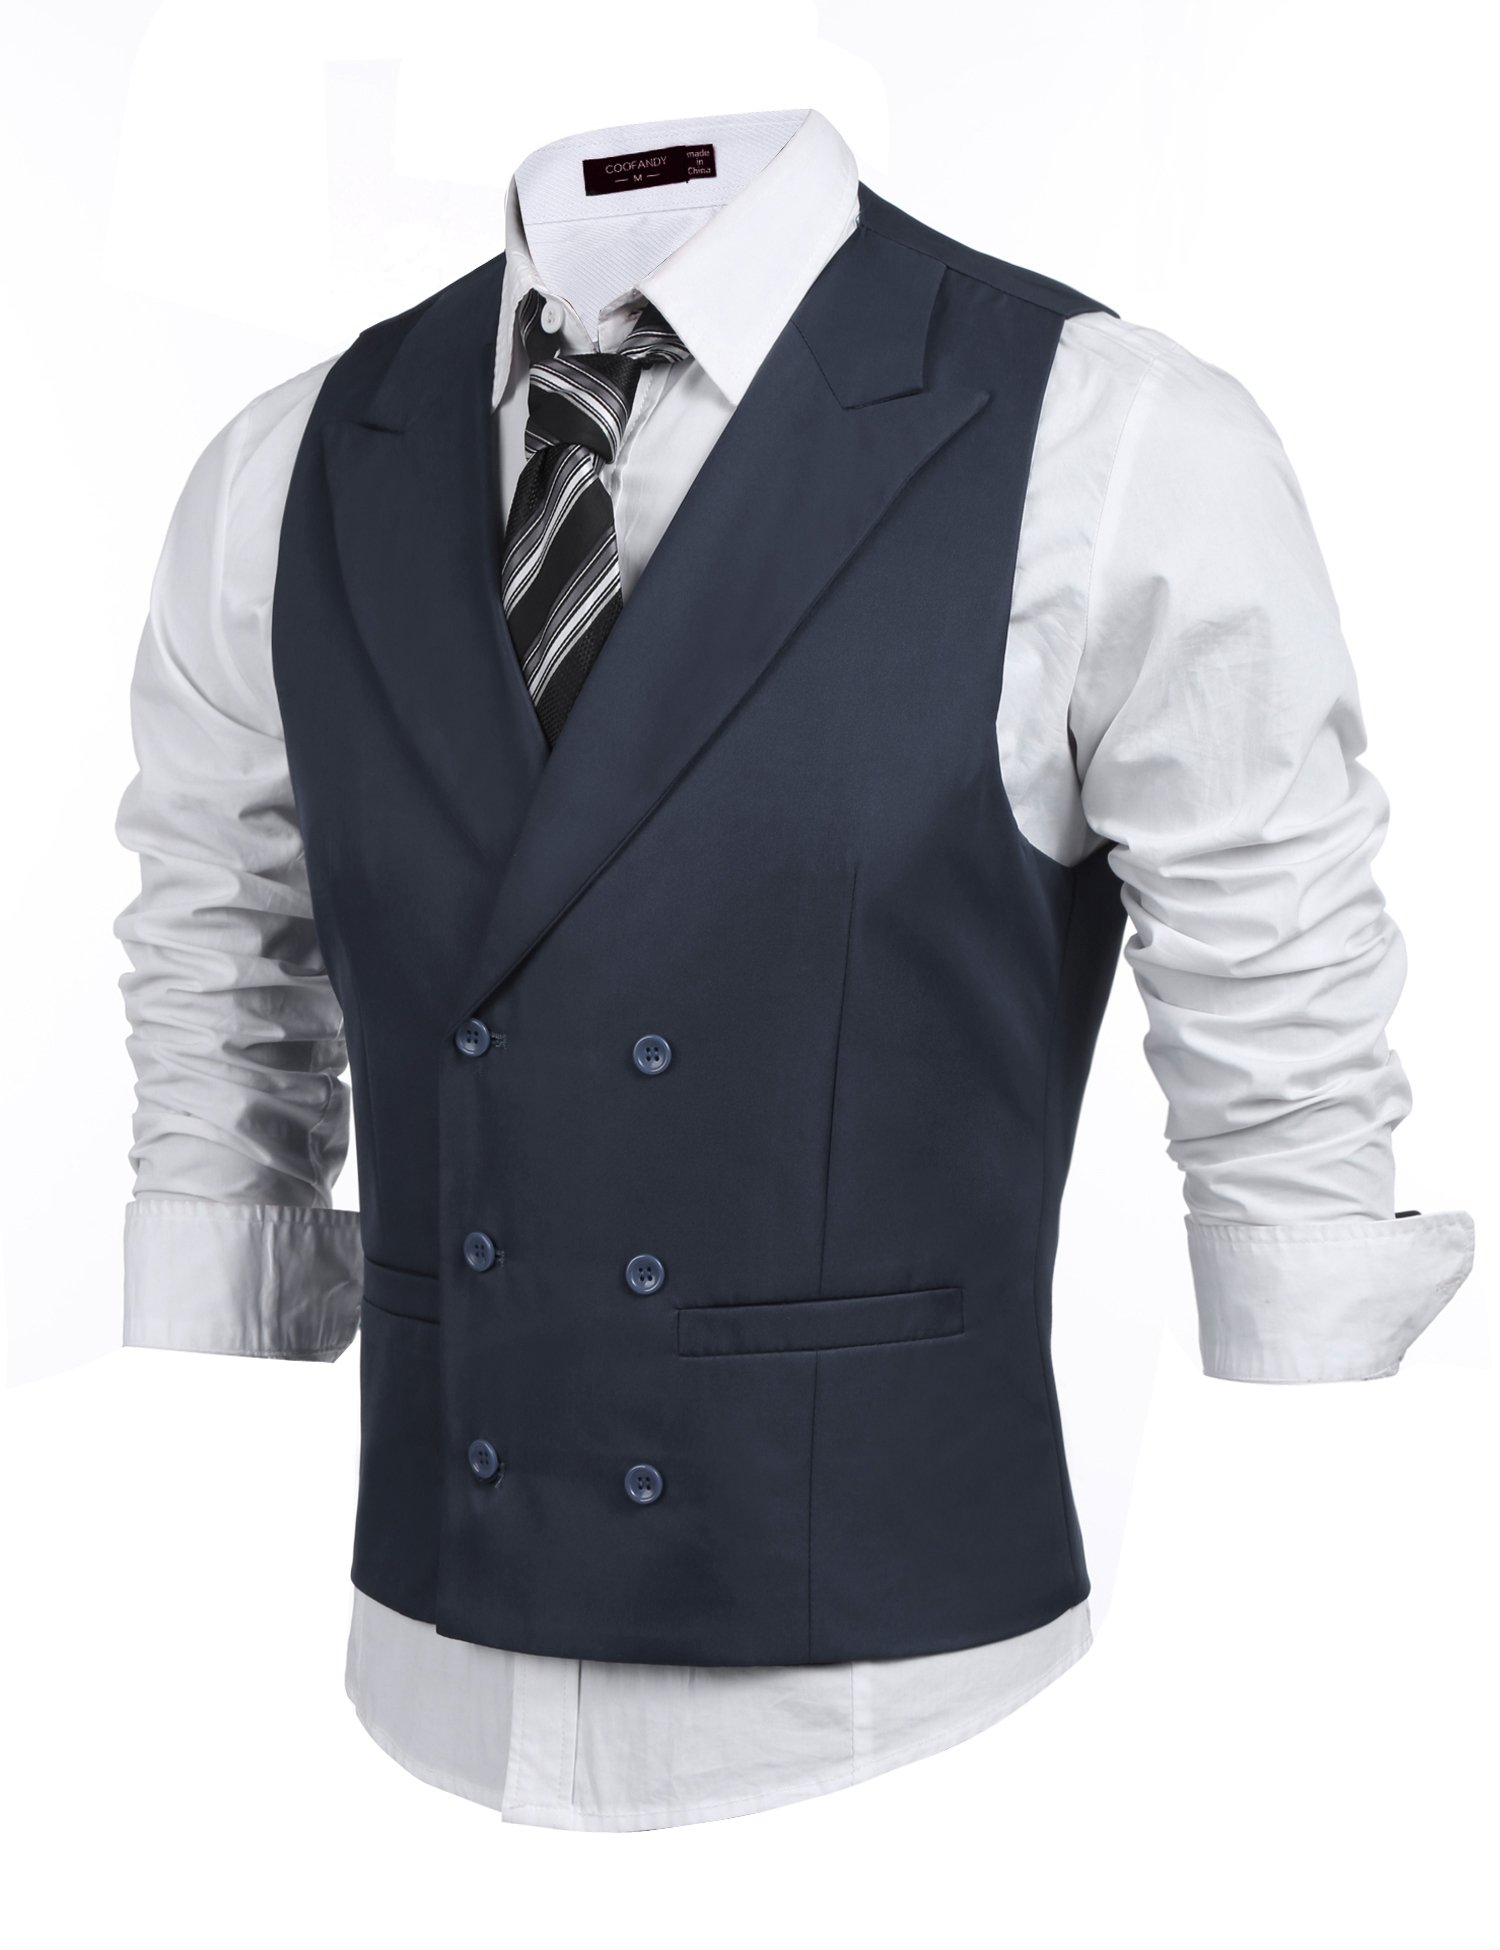 Coofandy Men's Double Breasted Classic Formal Waistcoat Slim Suit Vest, Charcoal, Medium